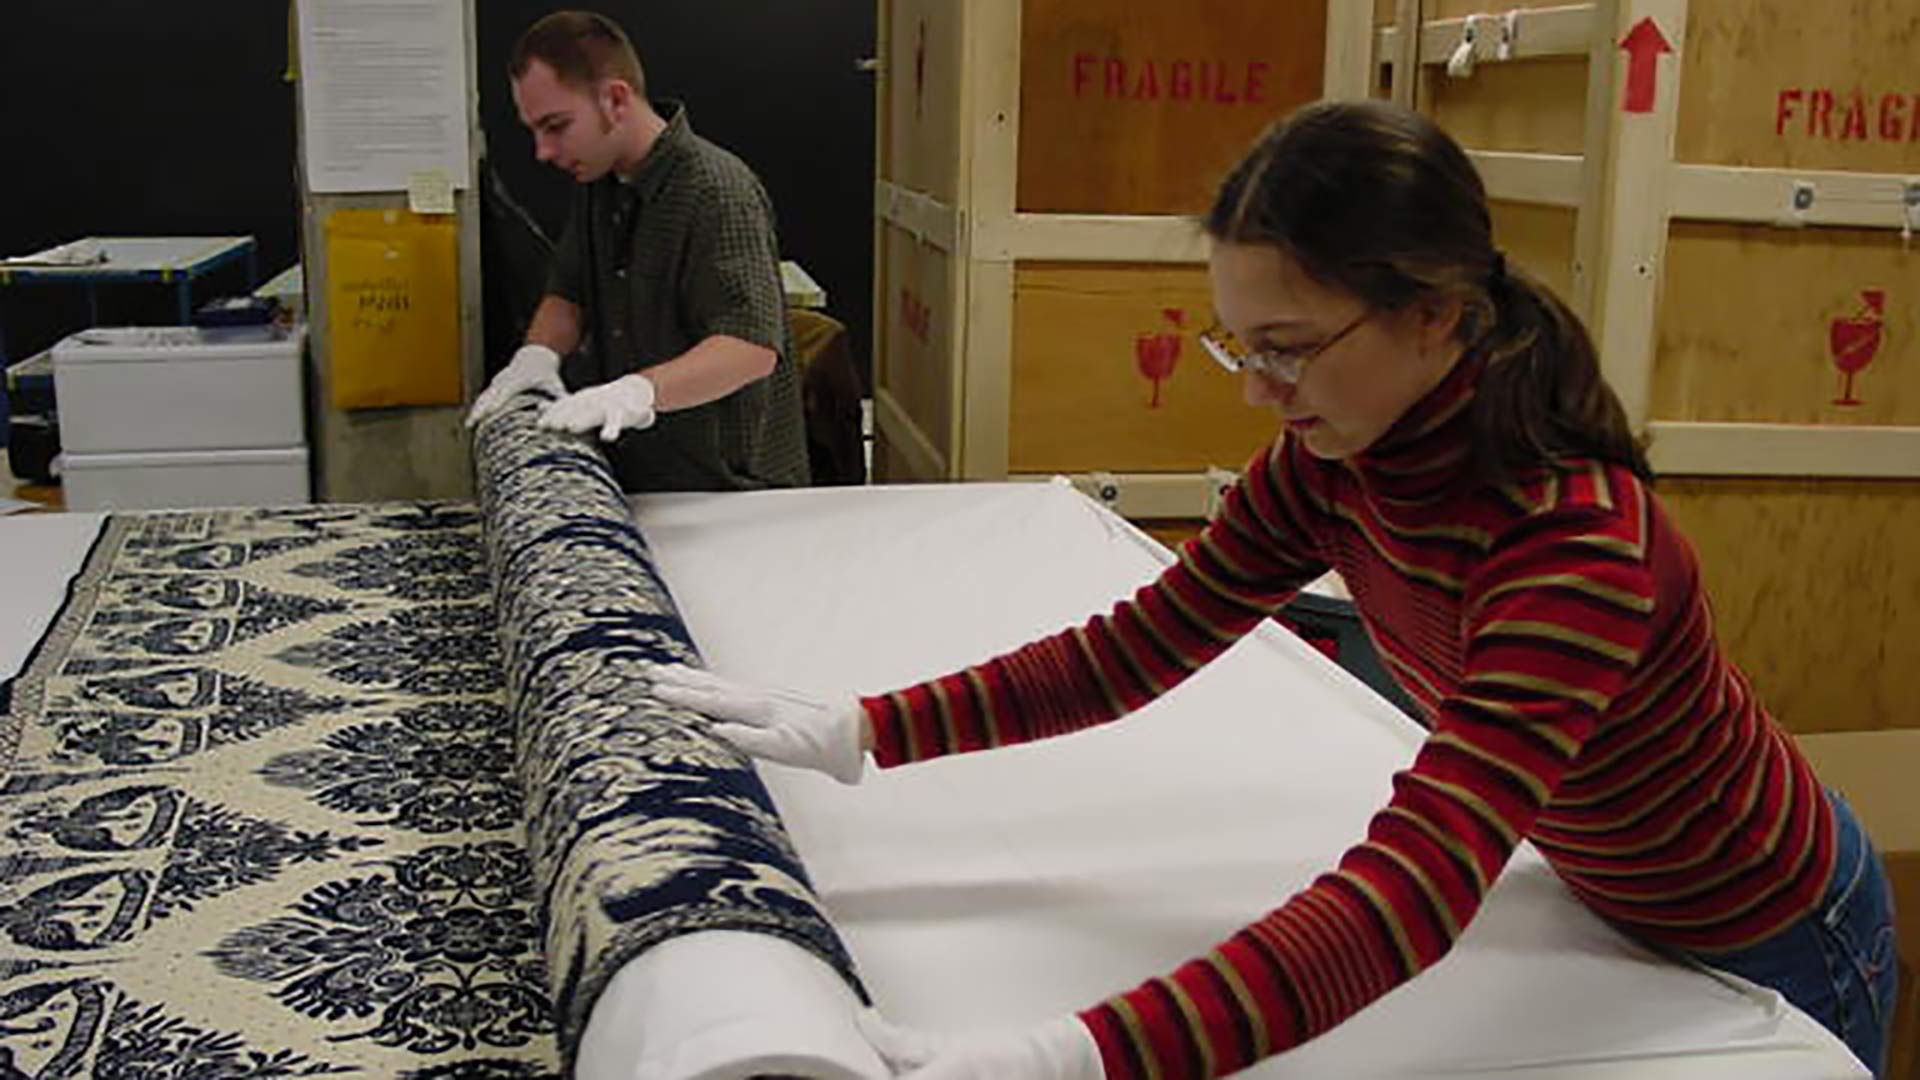 Behind the Scenes: Textile Rolling overview image